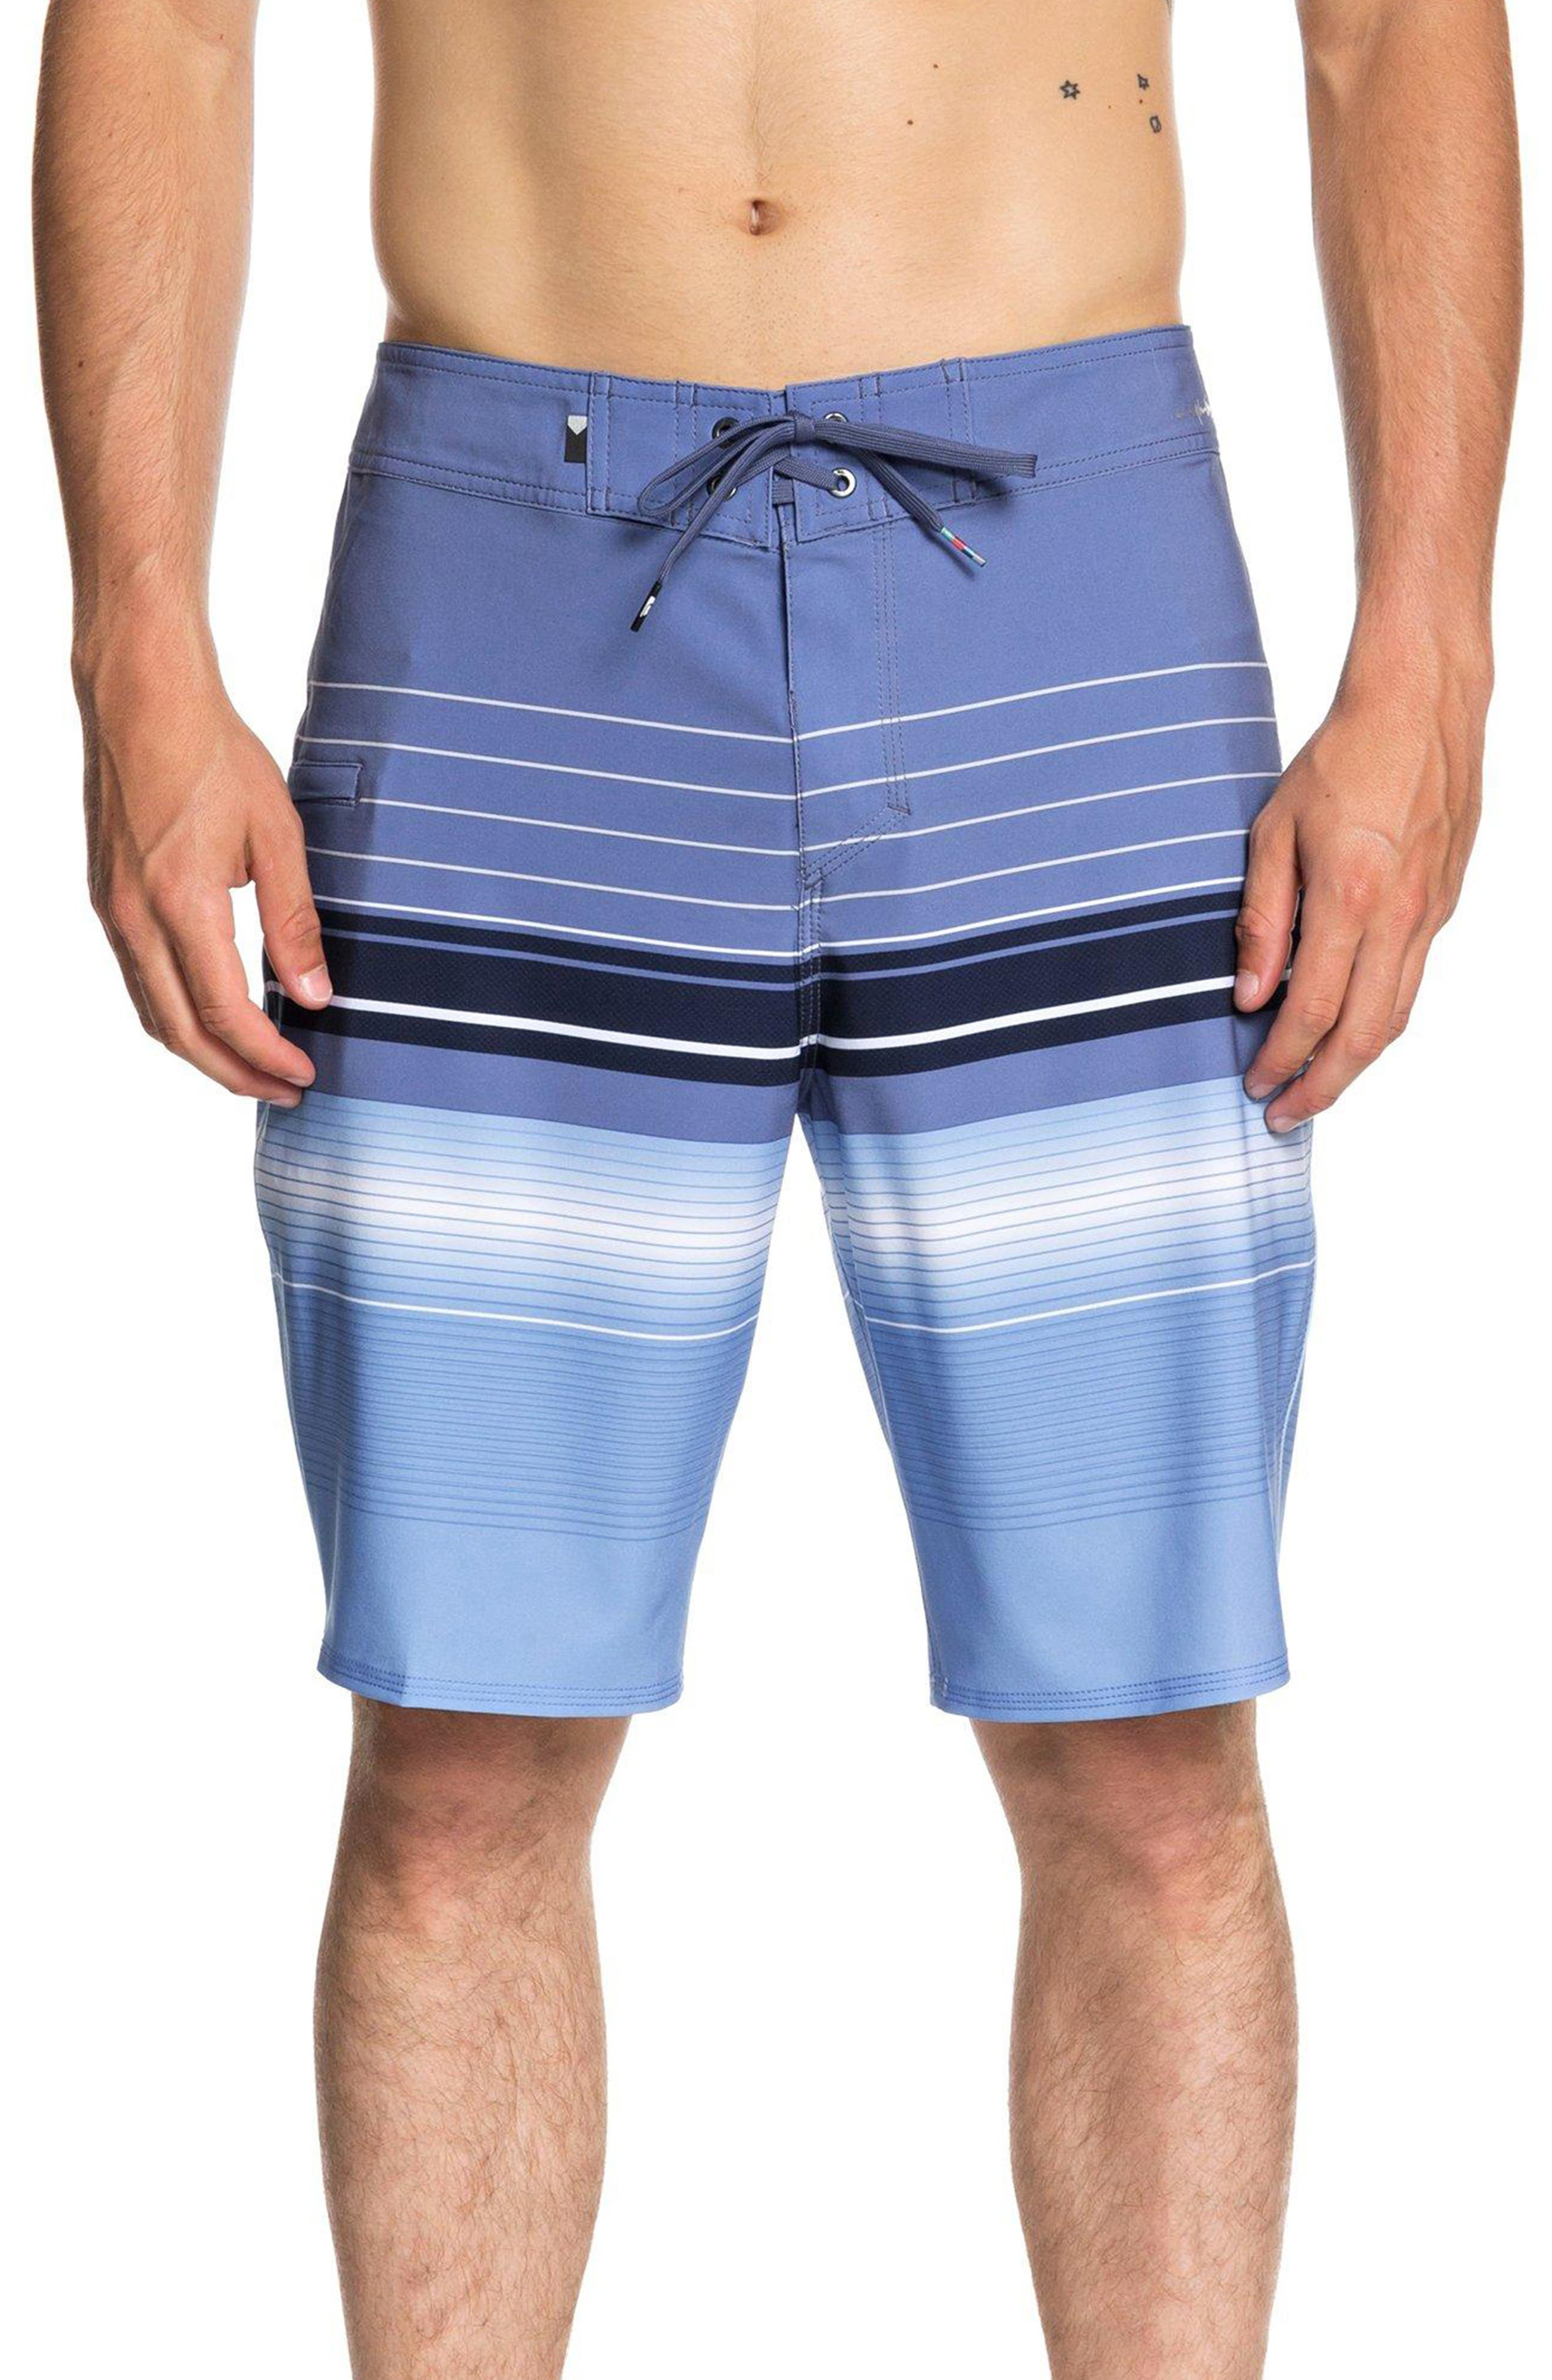 Quiksilver Highline Swell Vision Board Shorts, Blue